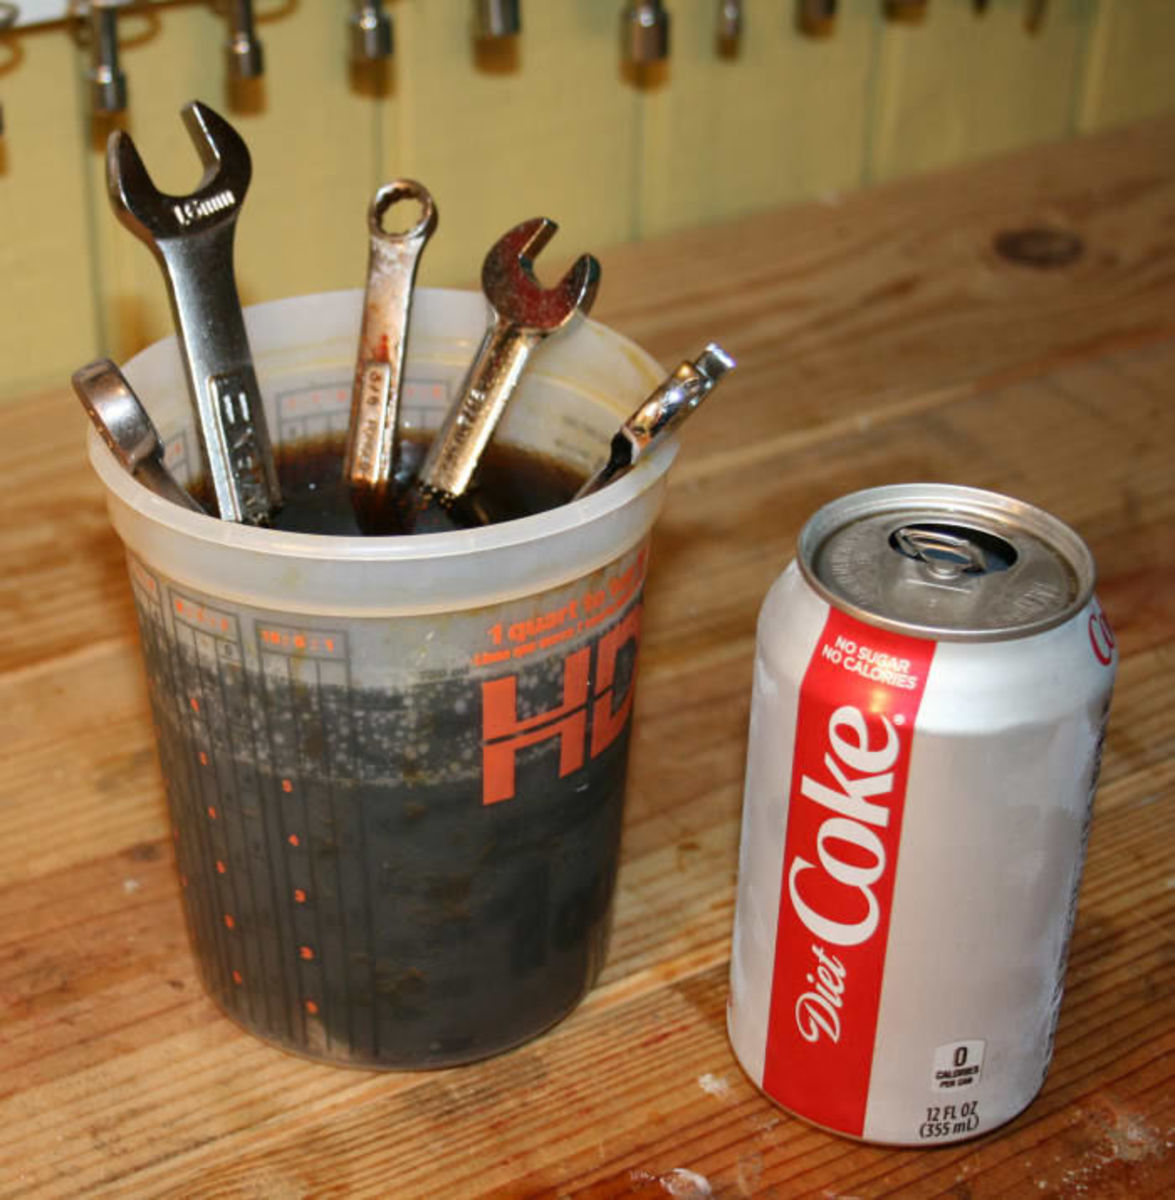 Container short-statured? End-for-end your wrenches and keep on soaking.